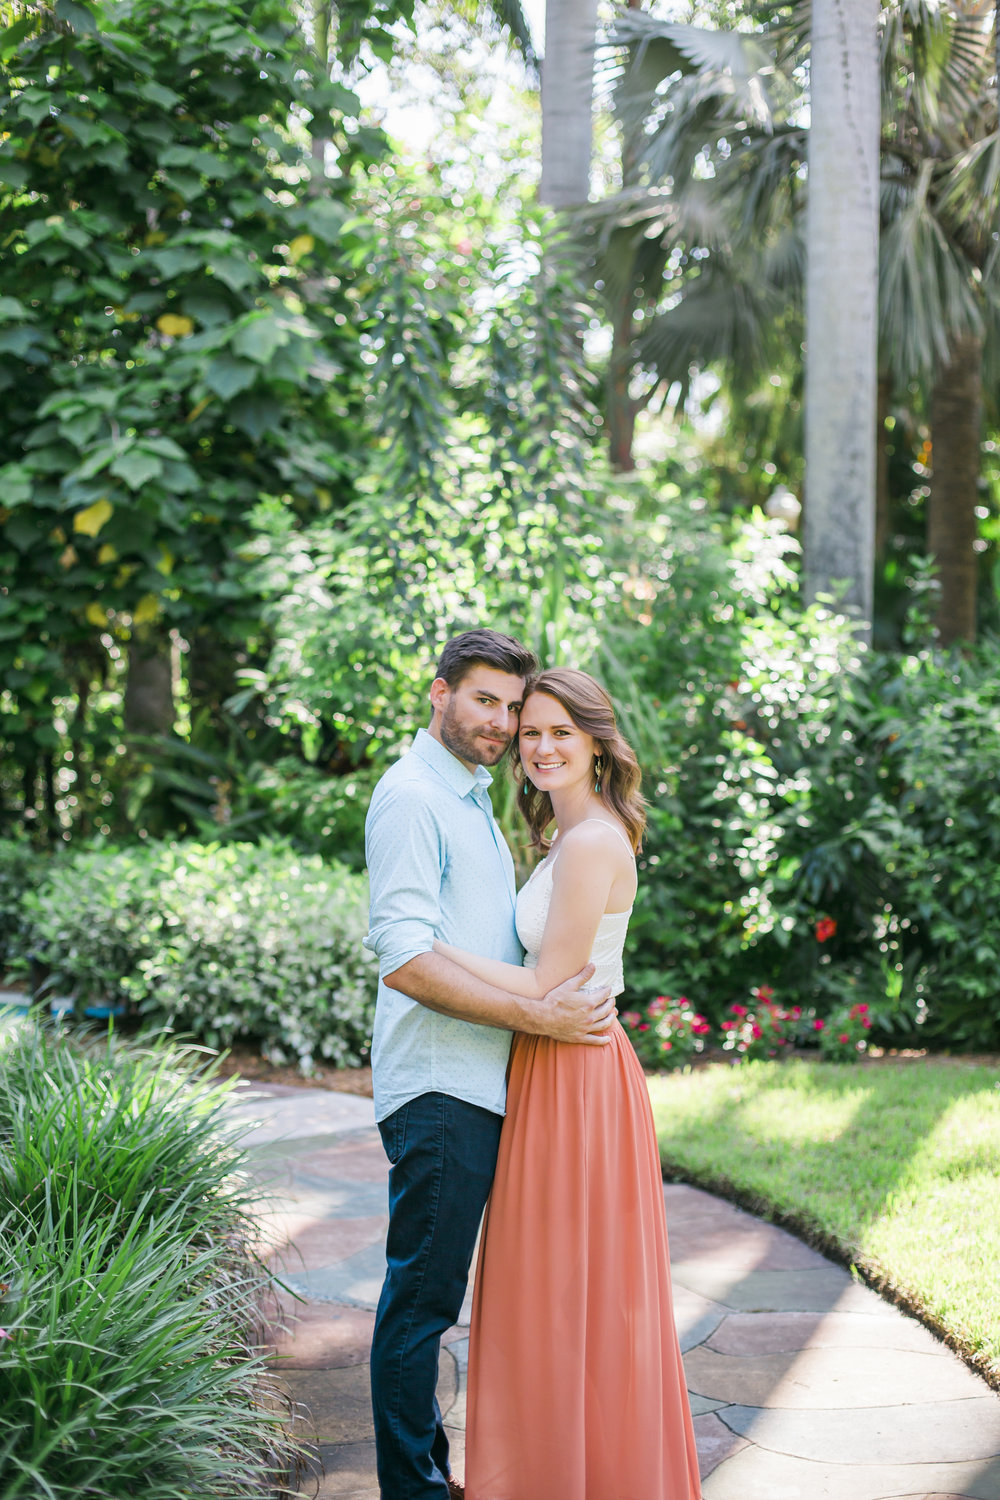 Kalli + Ryan - St. Pete Wedding Photographer - Sunken Gardens Engagement Photography - Preview Photos - Emily & Co. Photography (12).jpg